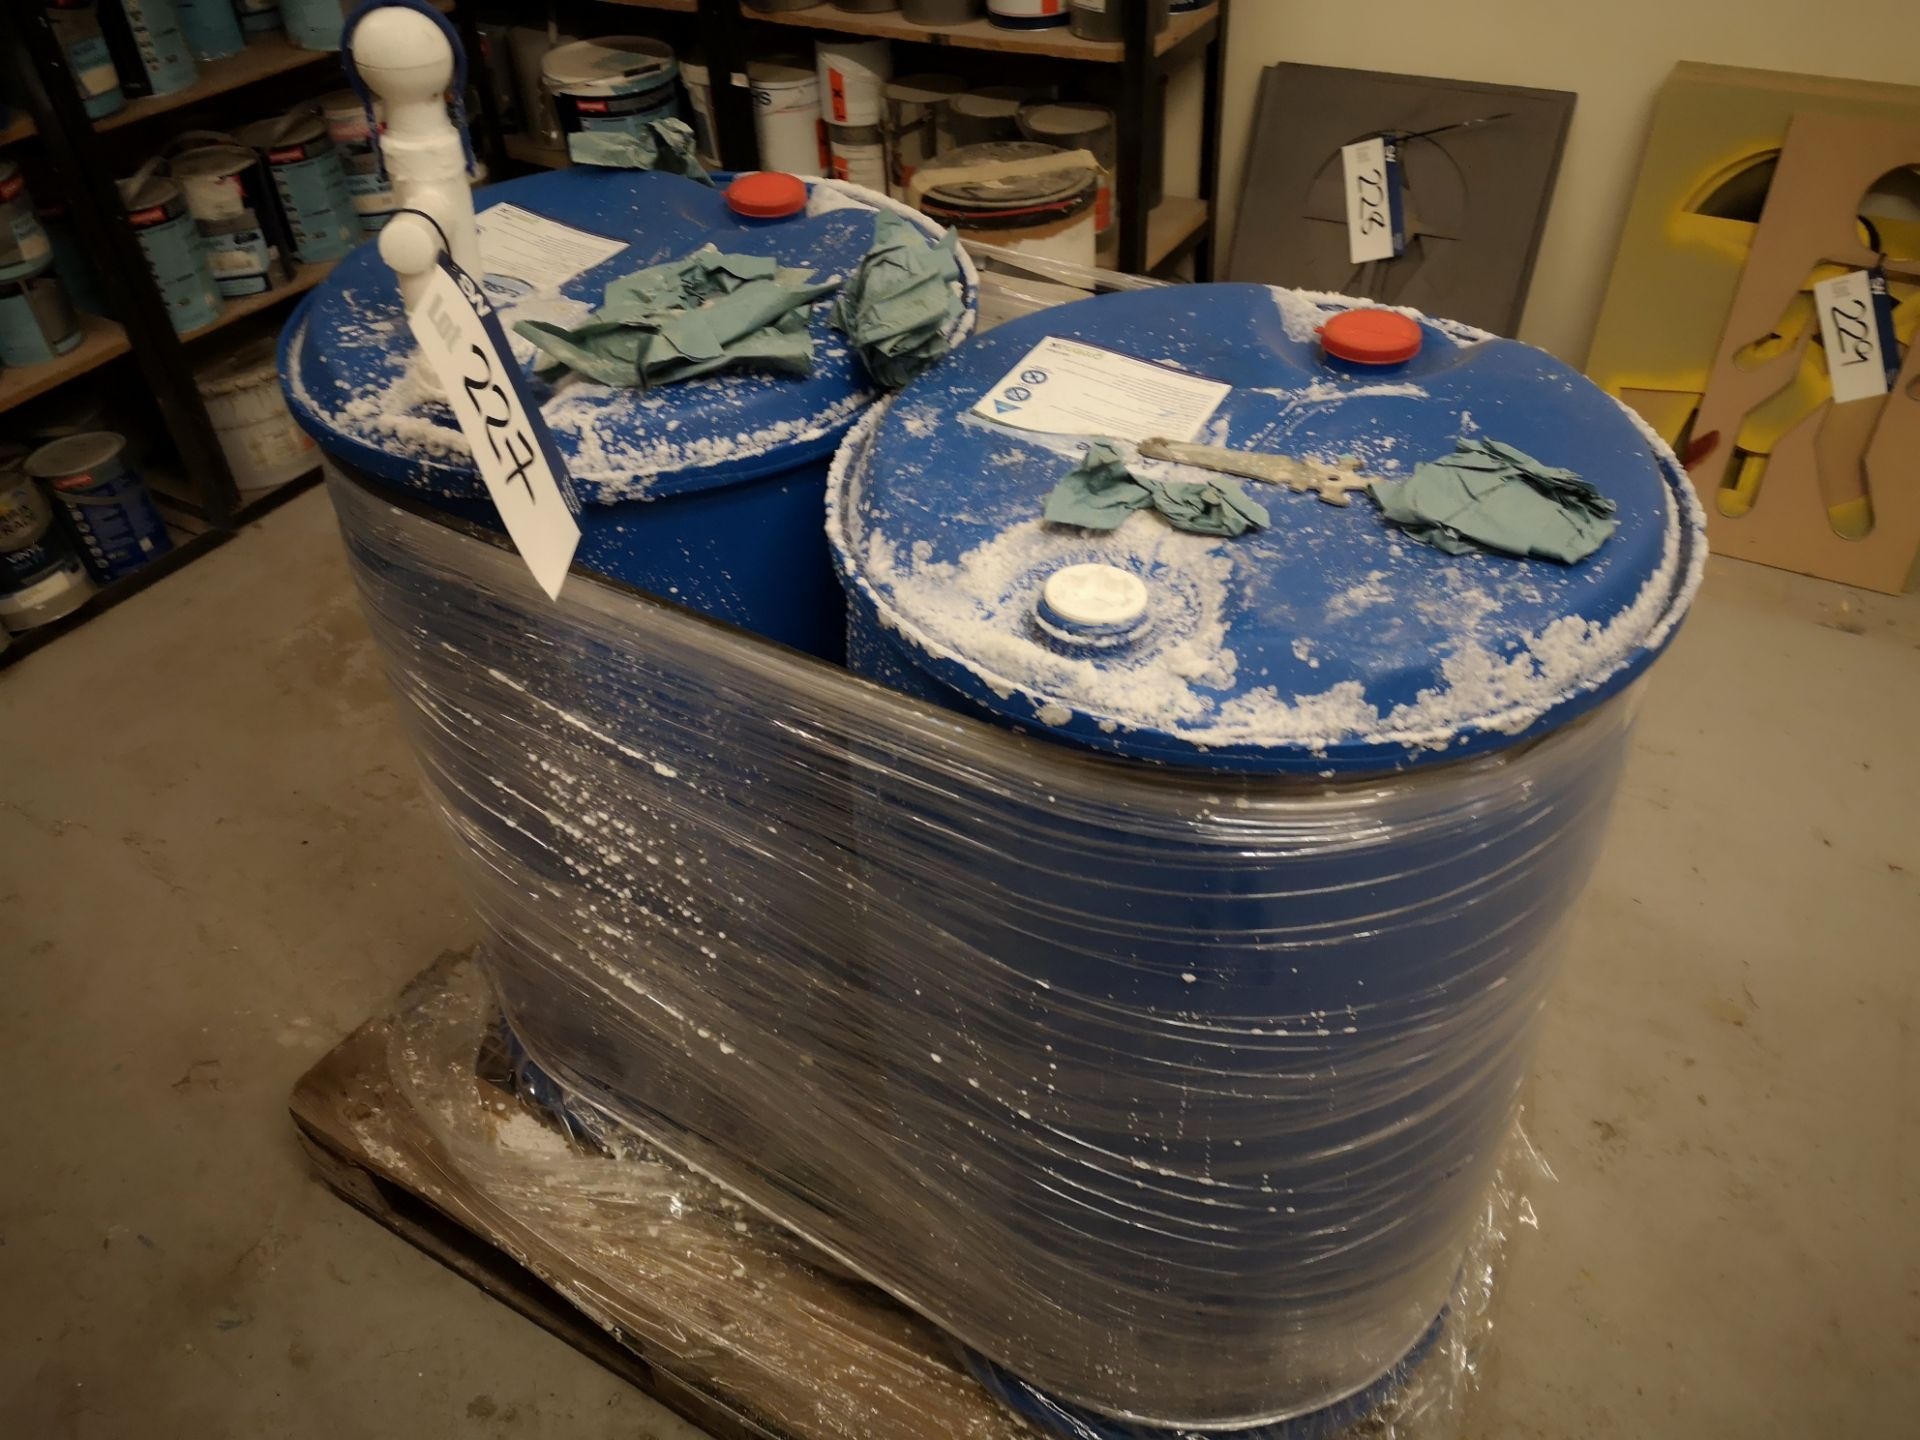 Lot 227 - Two 205 litre Adblue Containers, with pump, one em